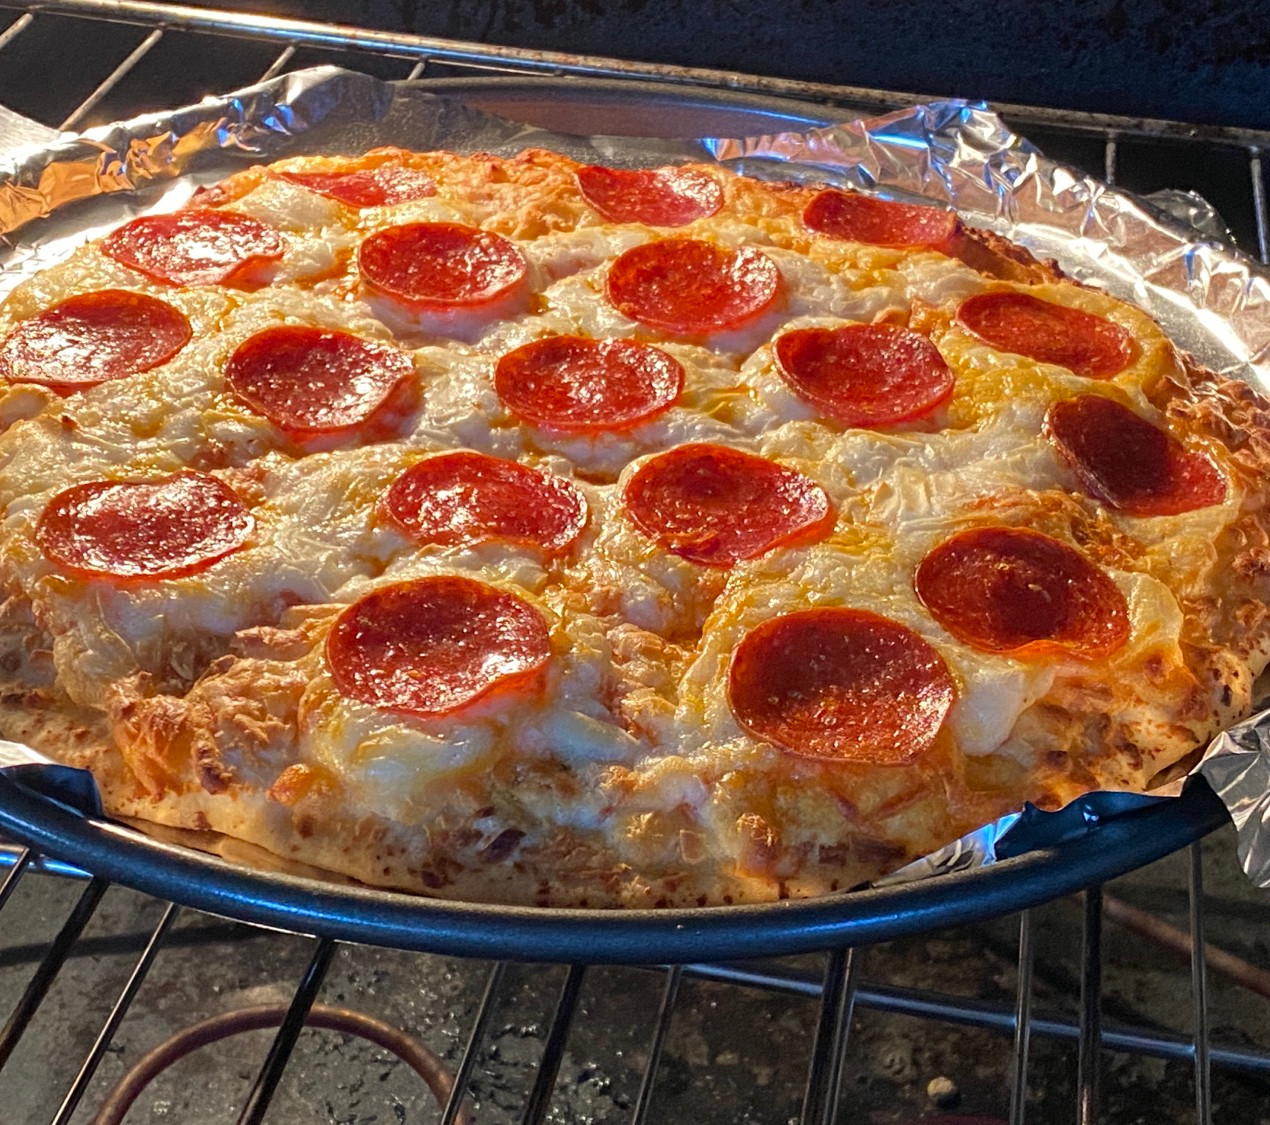 frozen pizza cooking in an oven